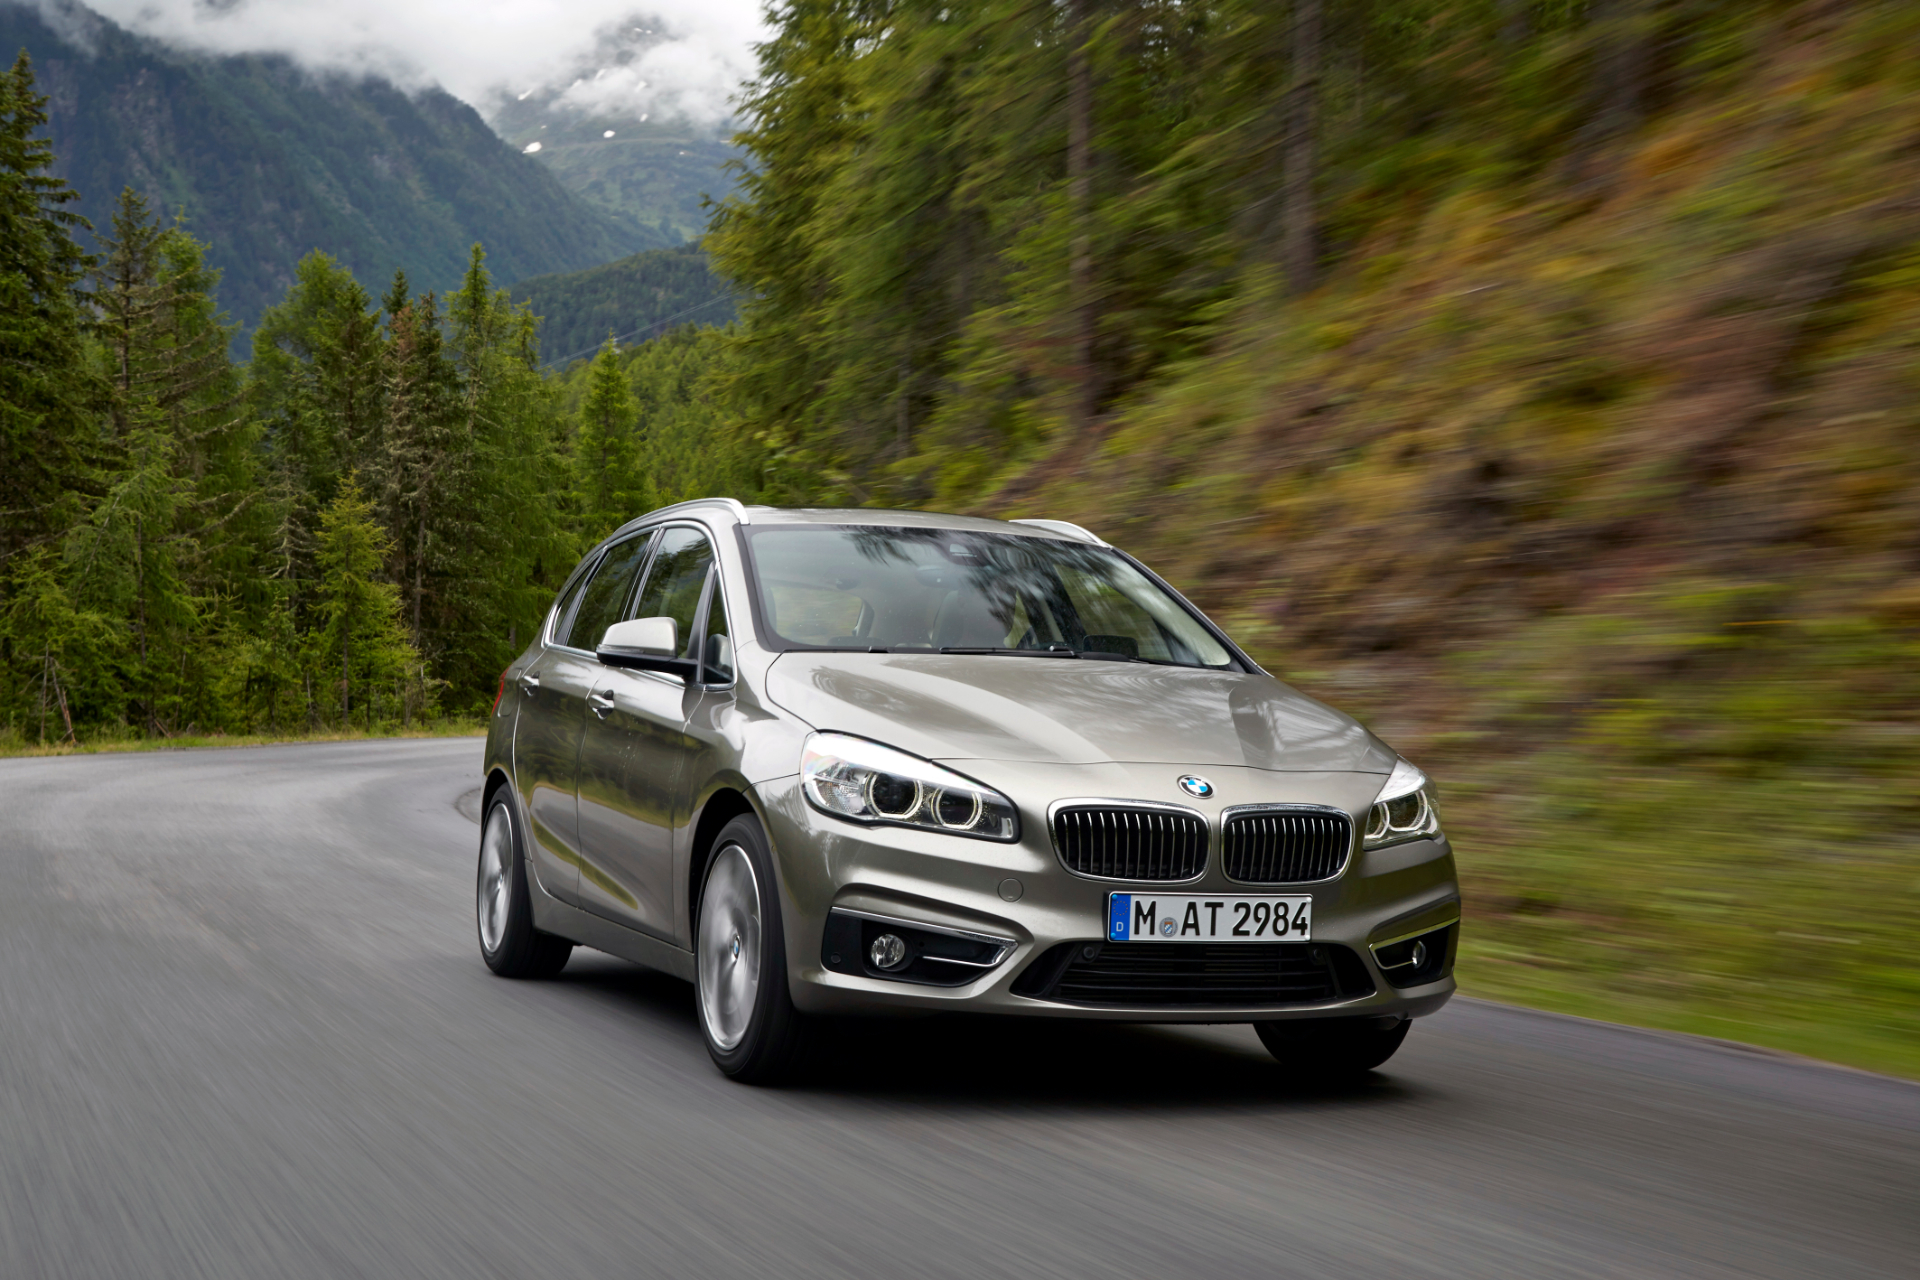 BMW 2 series Active Tourer 220i 2014 photo - 10